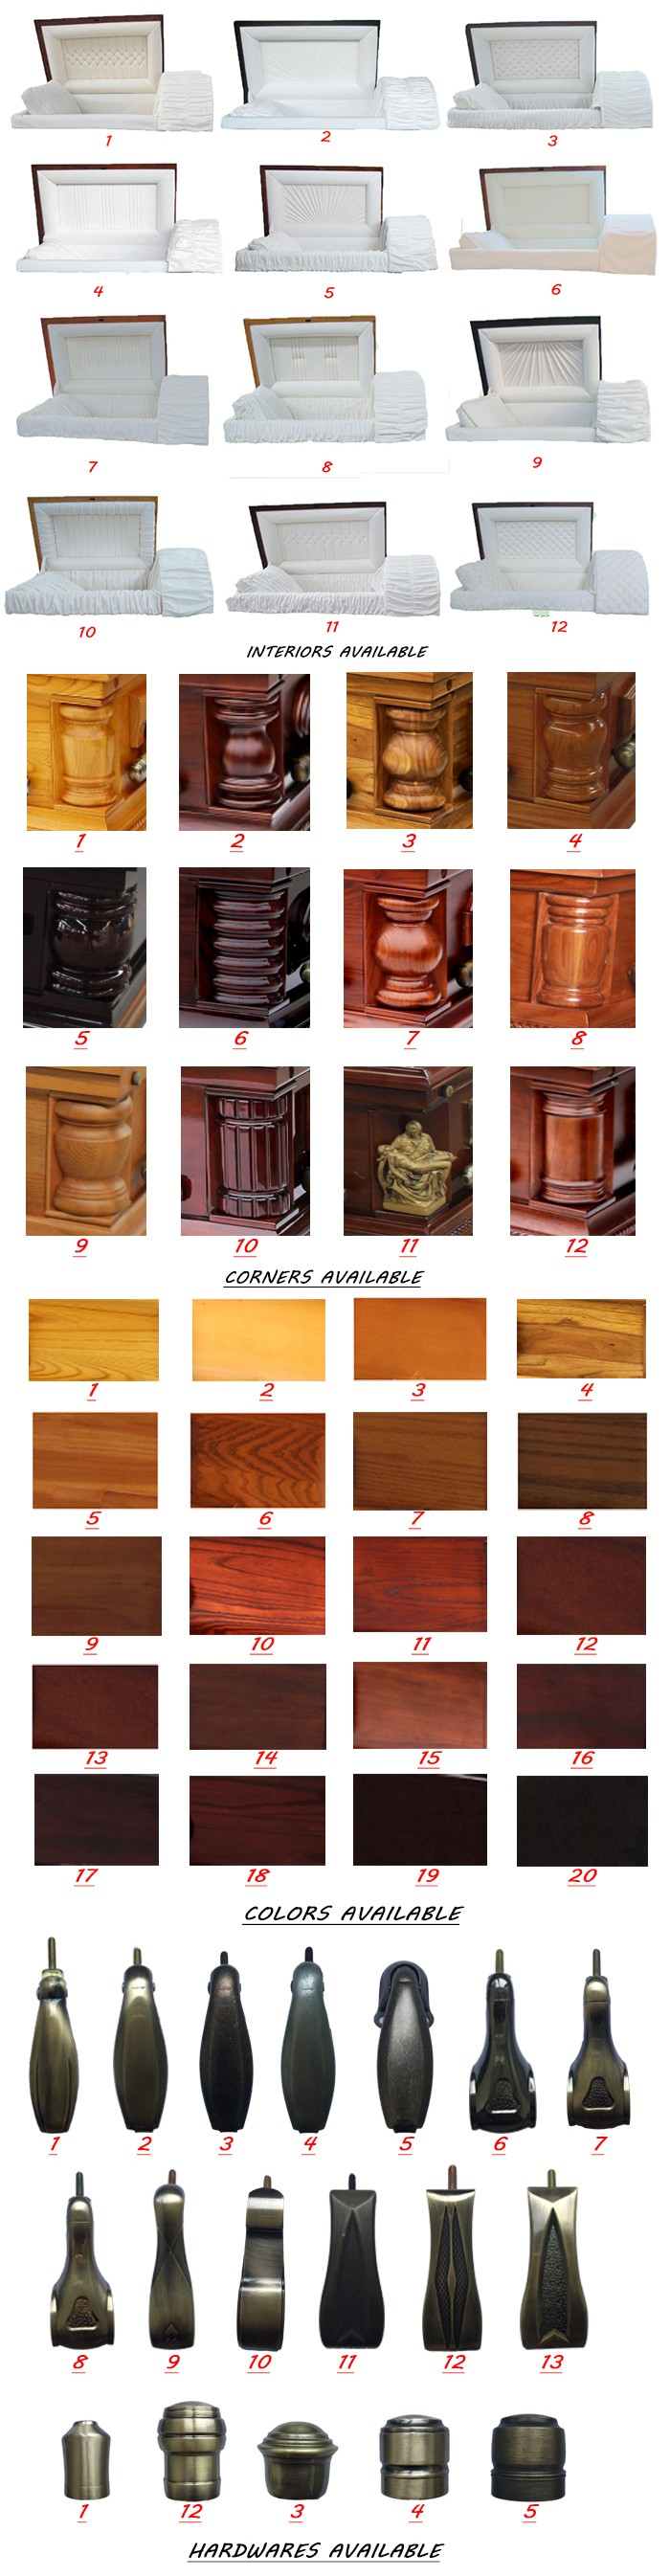 Credible wholesale funeral homes up top casket coffin equipment for the dead. Credible Wholesale Funeral Homes Up top Casket Coffin Equipment